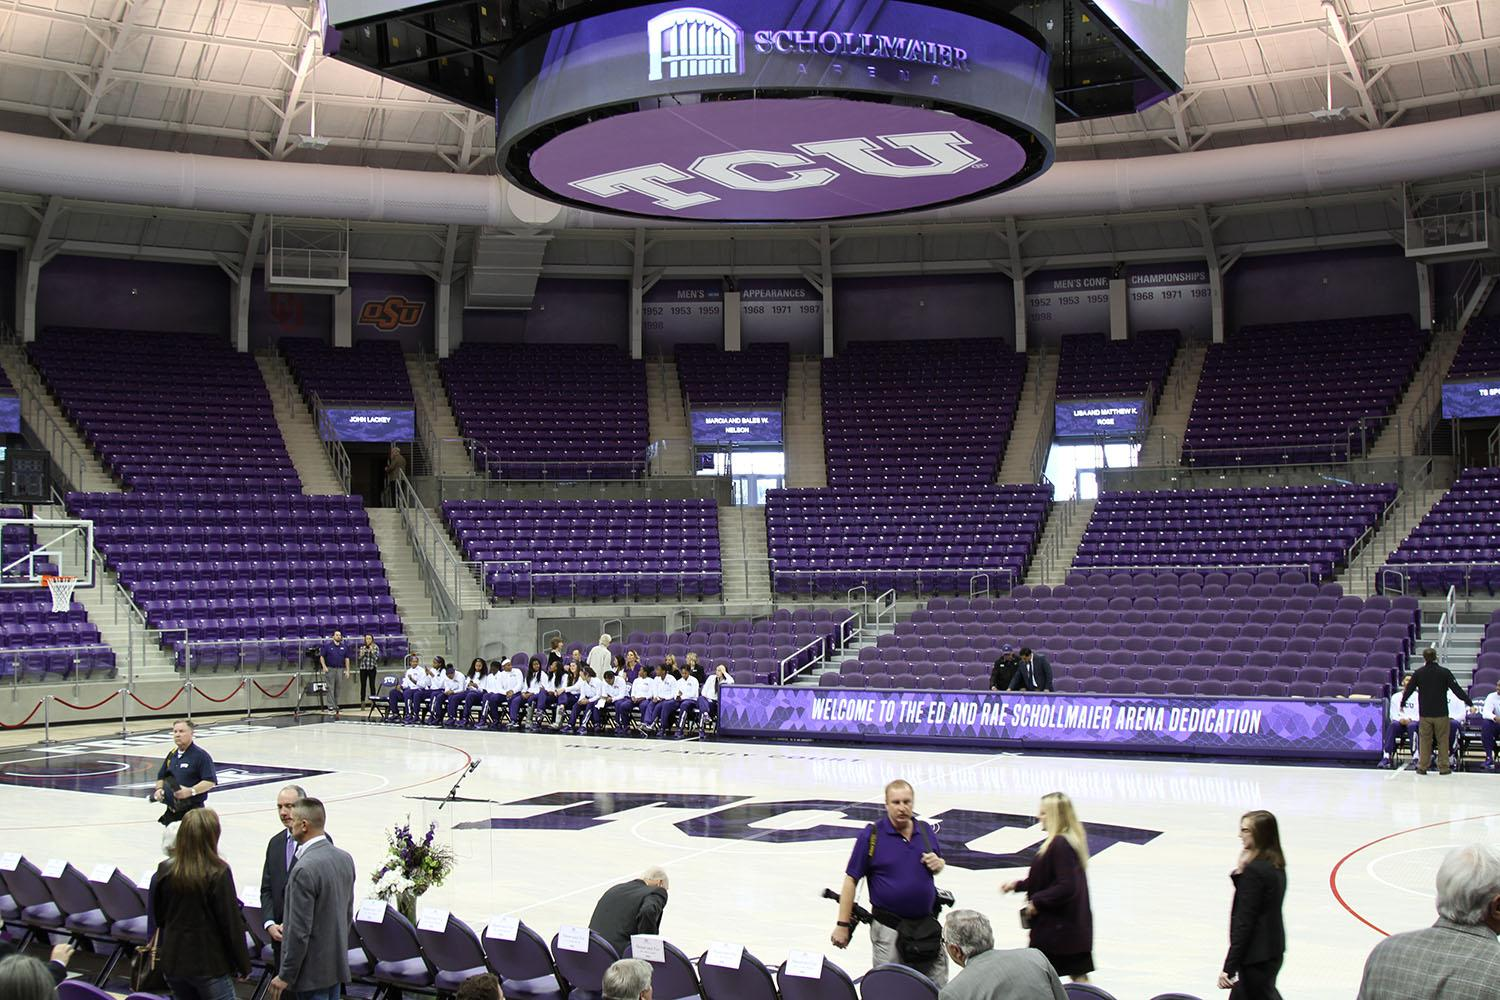 The new basketball arena opened Tuesday for a dedication.